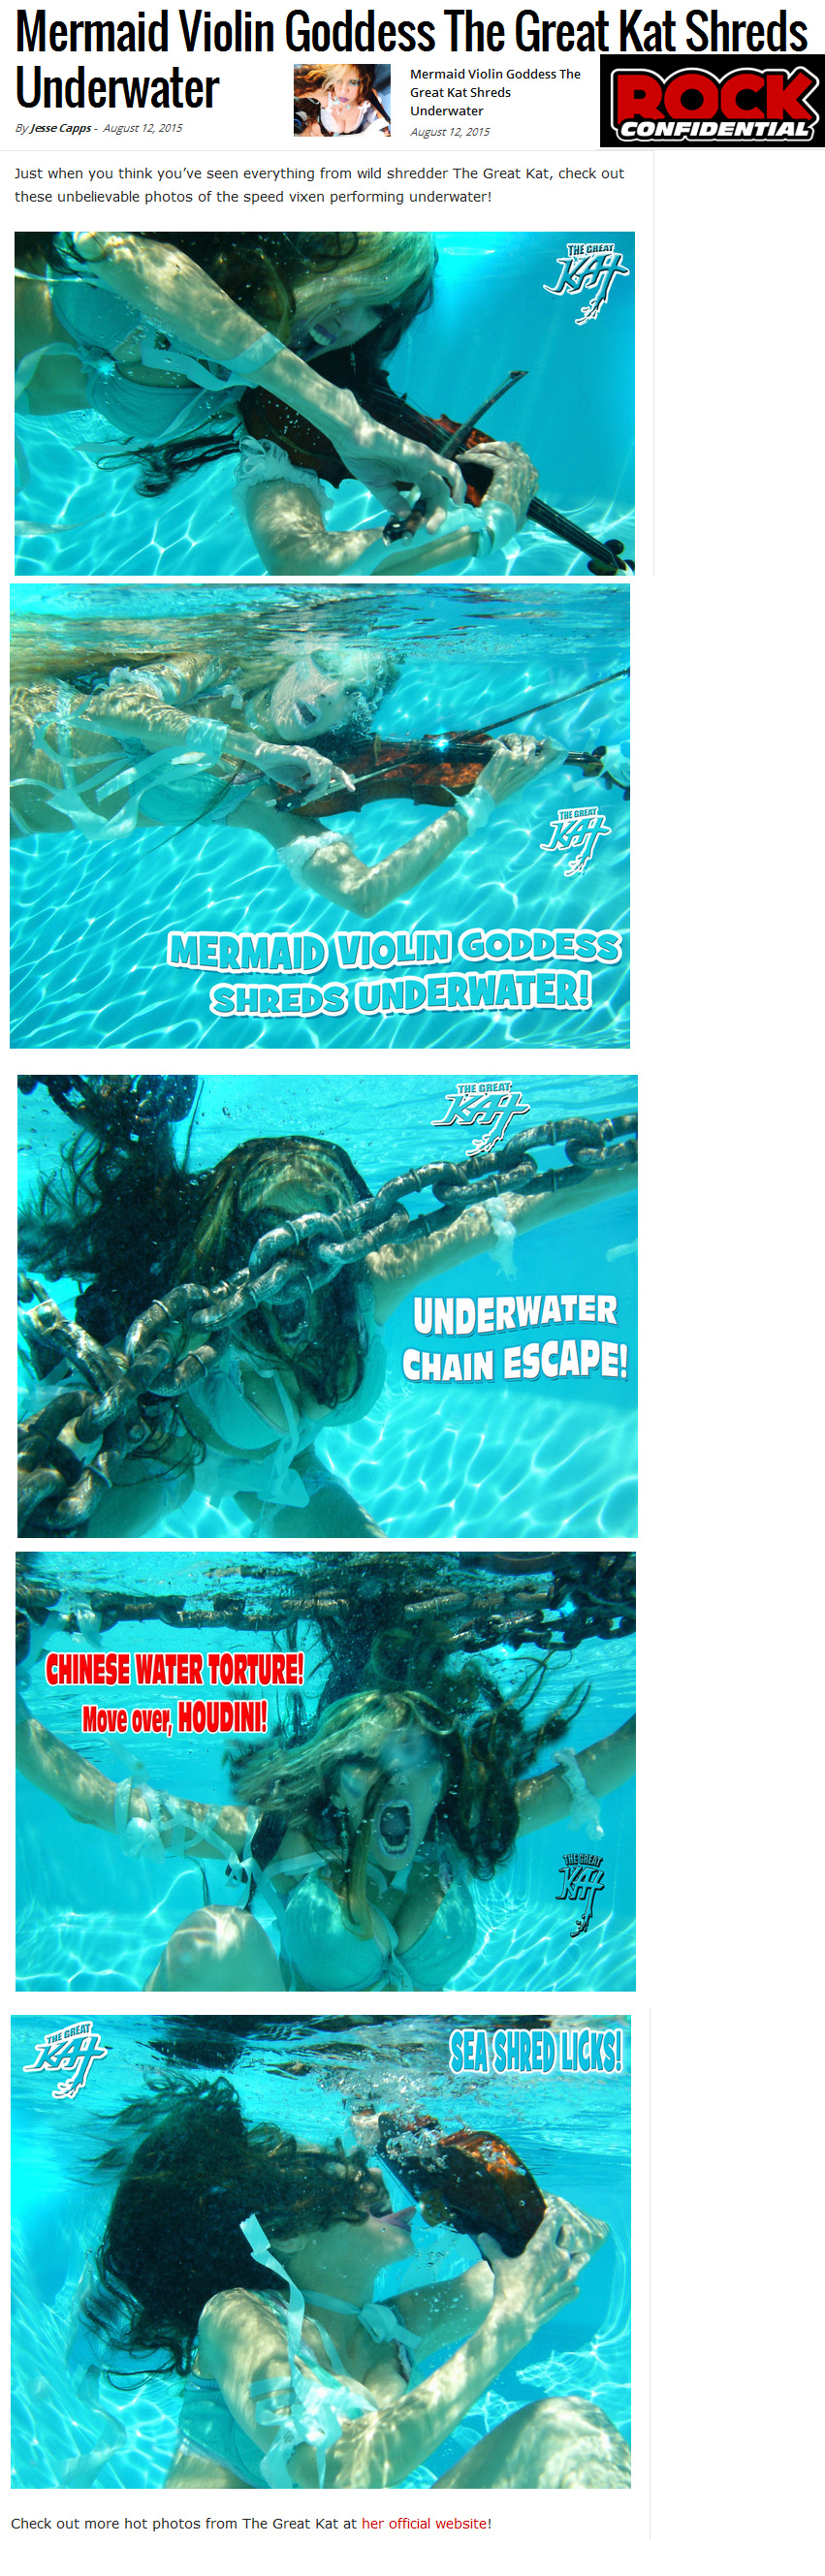 "ROCK CONFIDENTIAL FEATURES THE GREAT KAT! ""MERMAID VIOLIN GODDESS THE GREAT KAT SHREDS UNDERWATER""! ""Just when you think you've seen everything from wild shredder The Great Kat, check out these unbelievable photos of the speed vixen performing underwater!"" By Jesse Capps, Rock Confidential"